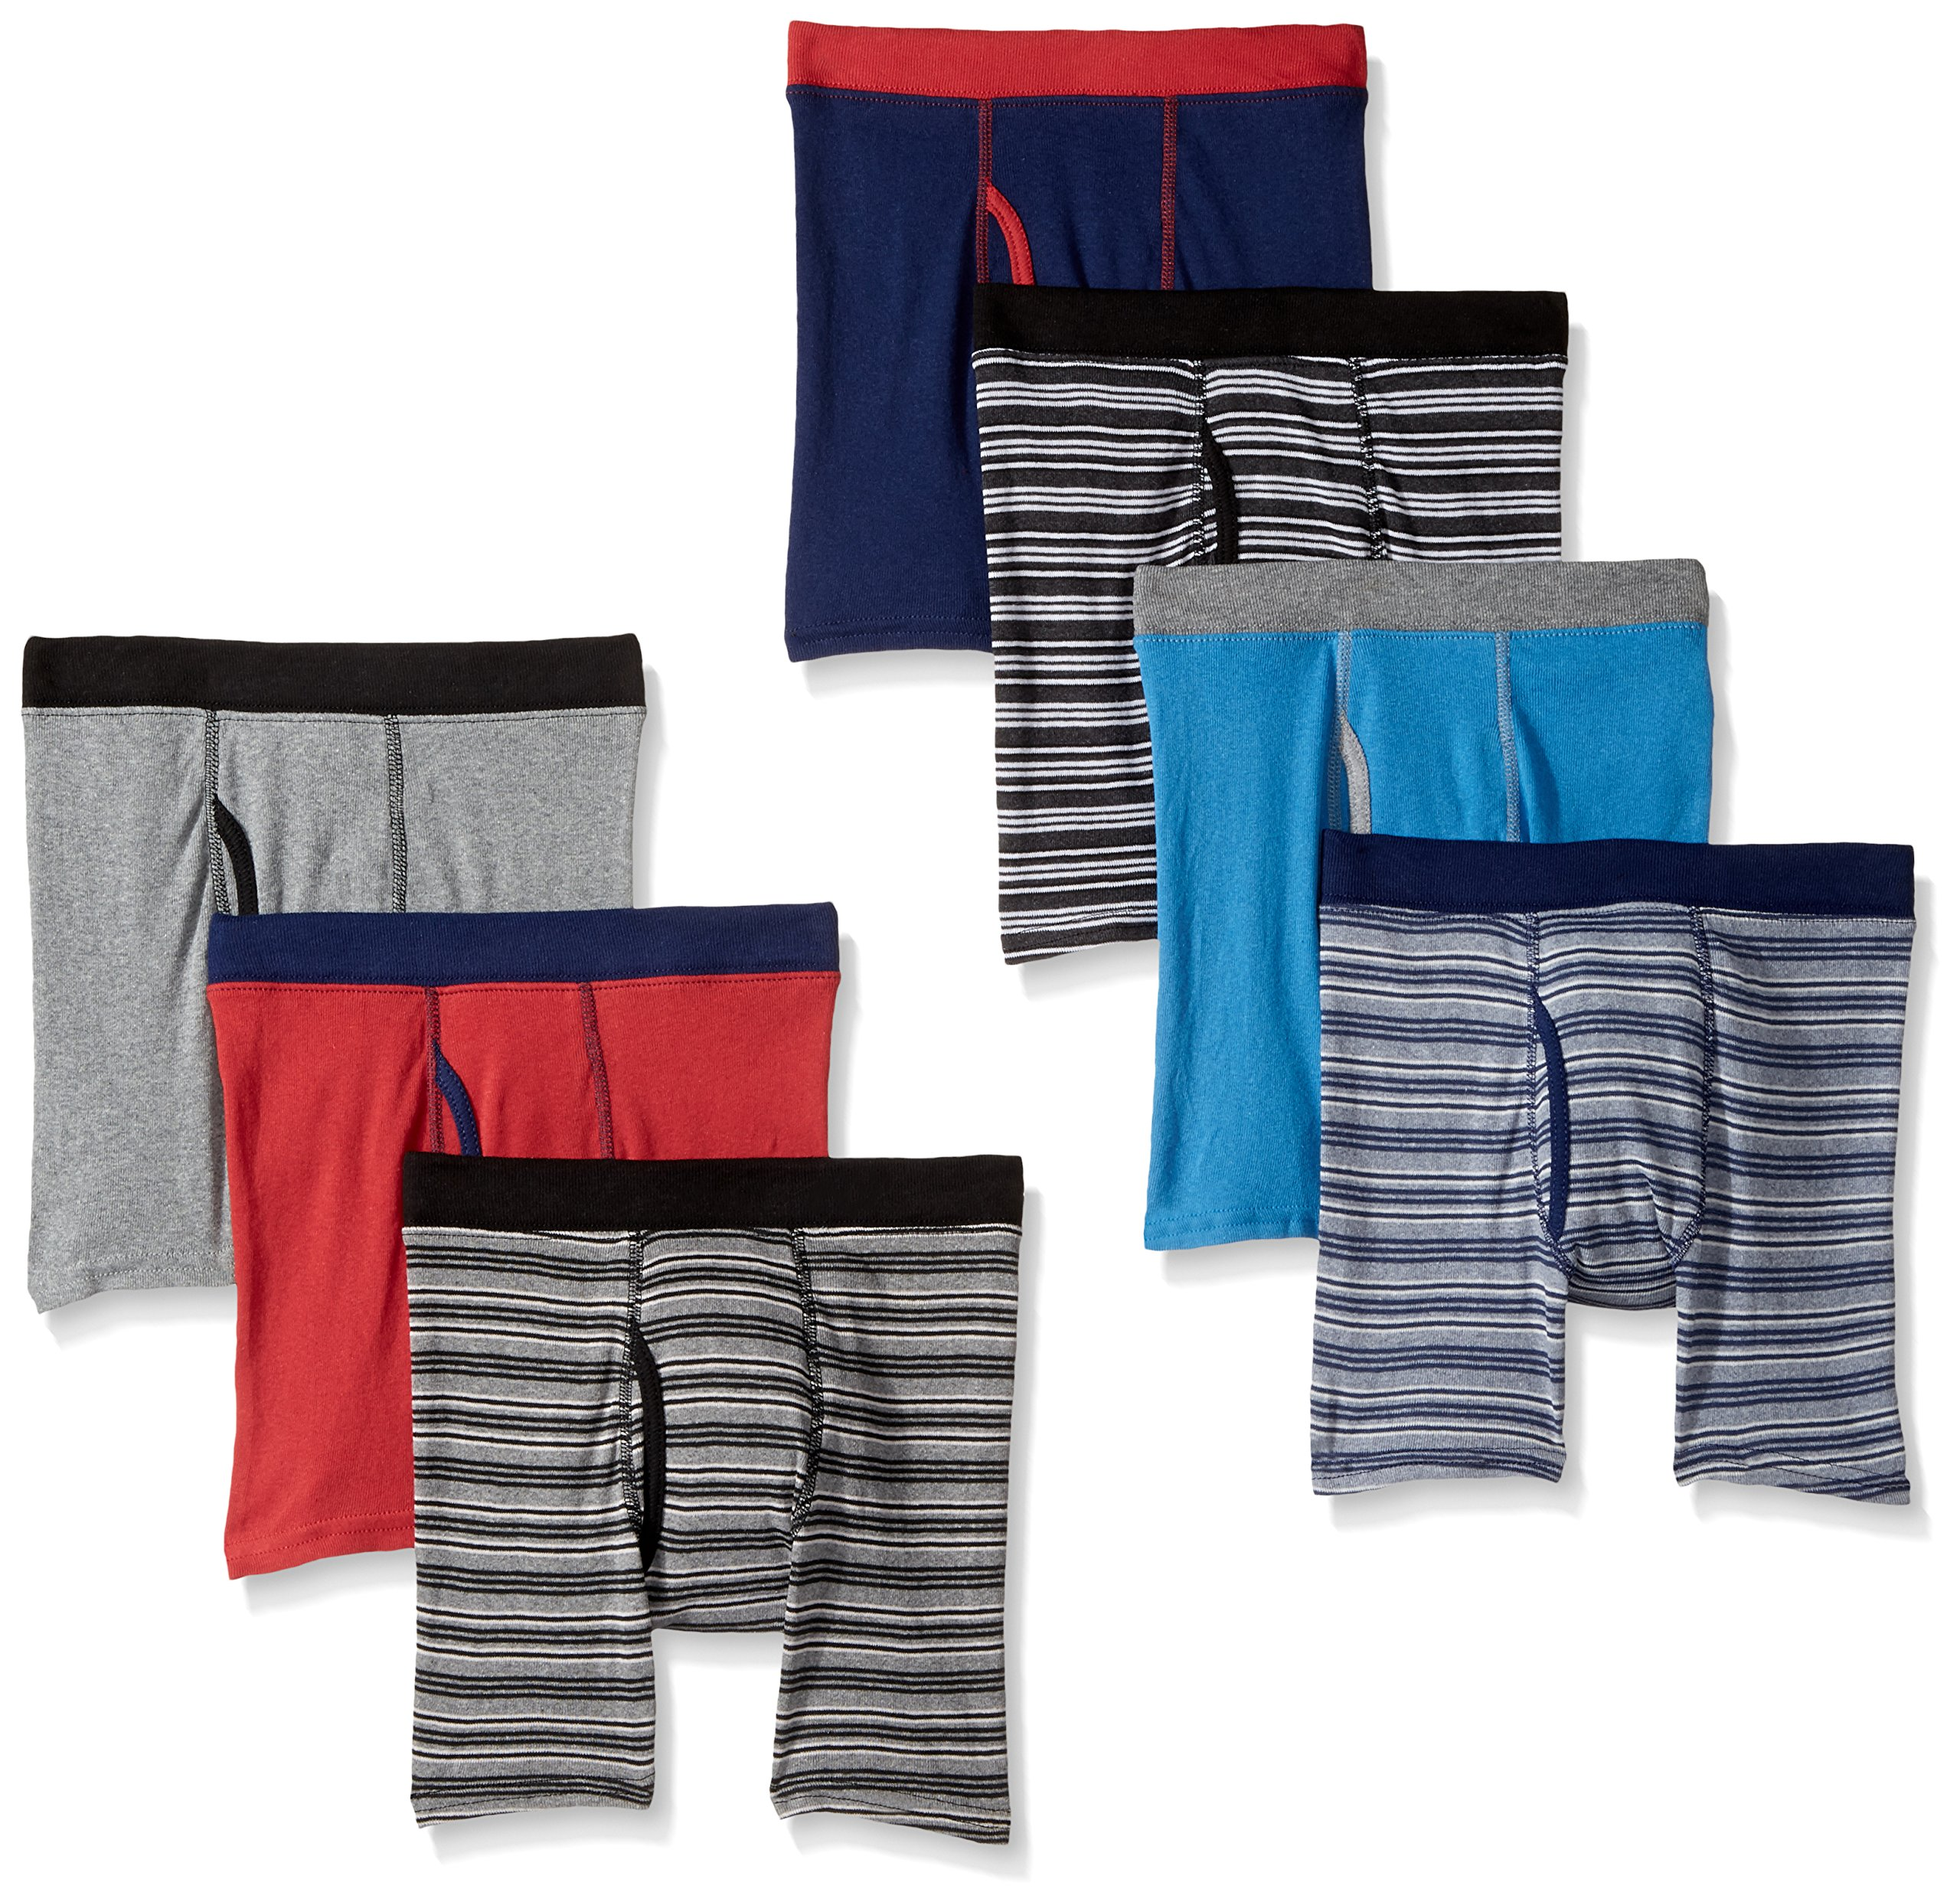 Hanes Big Boys' Red Label Comfortsoft Boxer Briefs (Pack of 7), Assorted, L